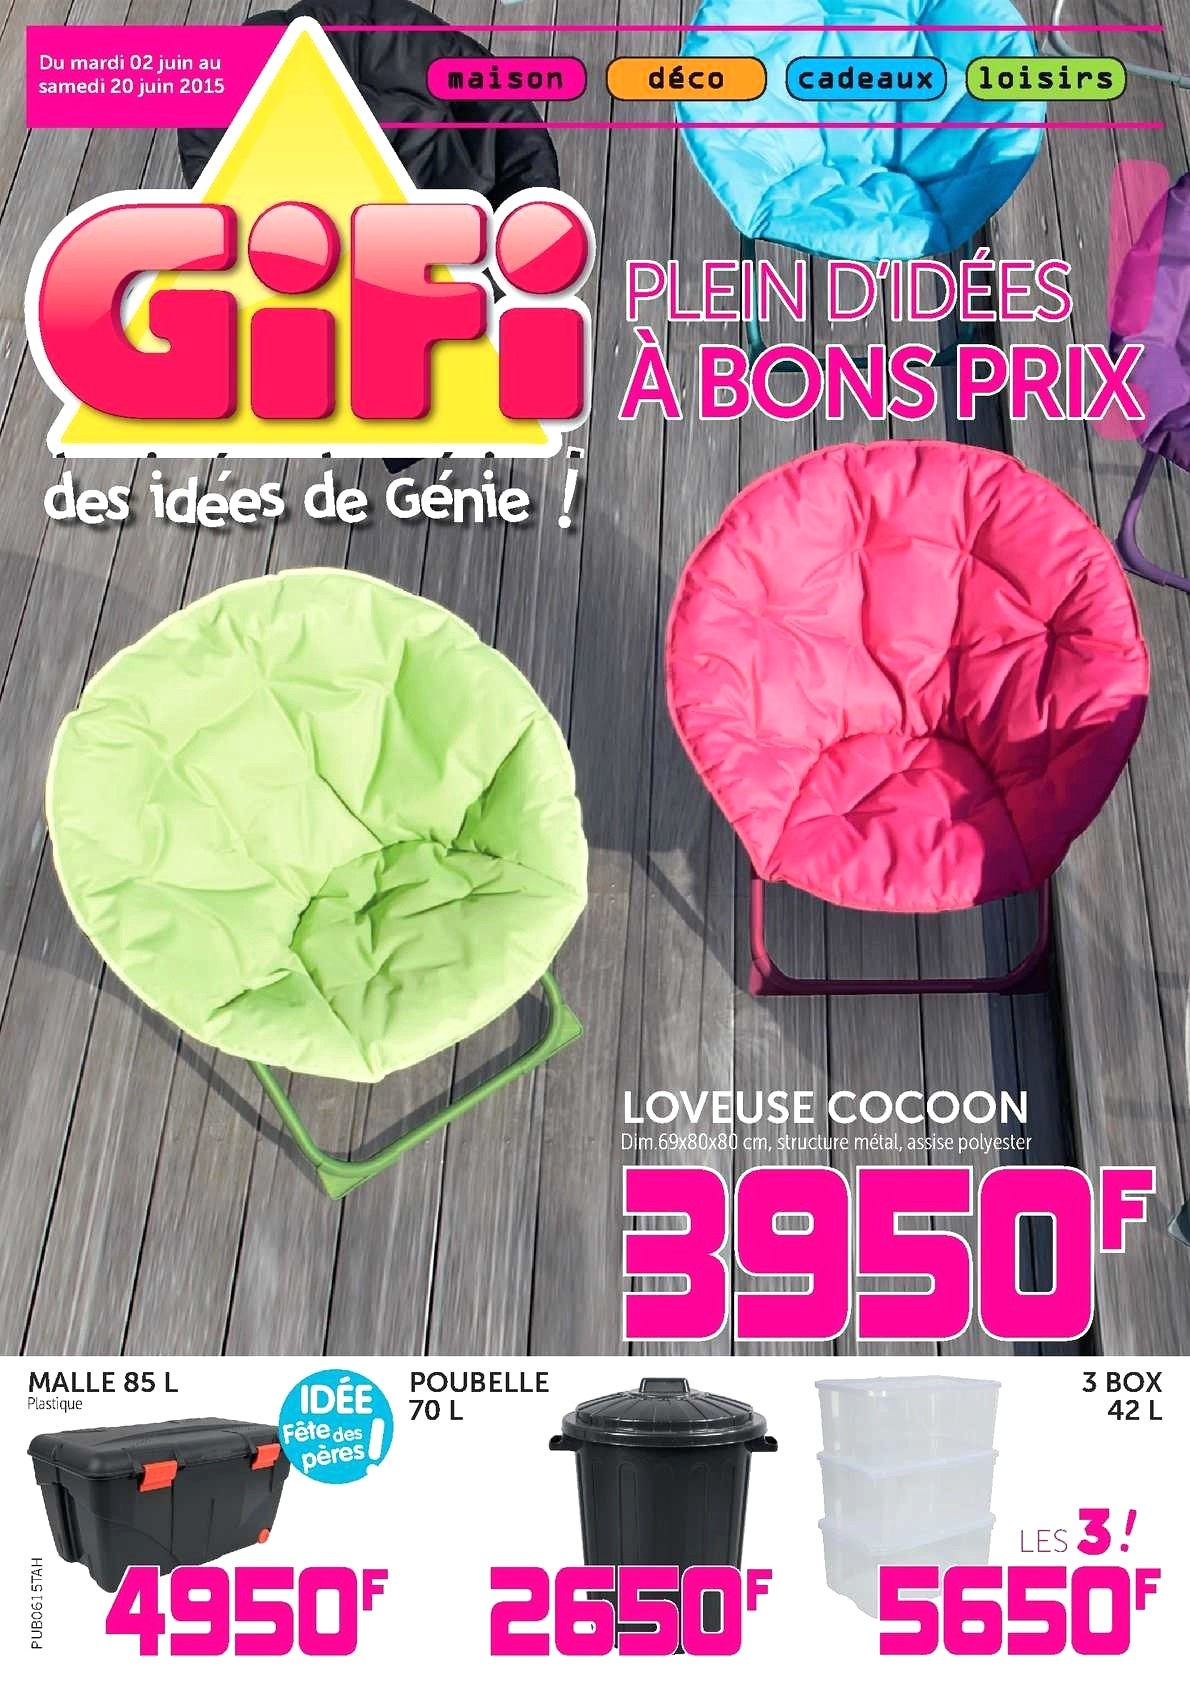 Clic Clac Gifi Luxe Photographie Coussin Bain De soleil Gifi Cool Gifi Coussin De sol Coussin De sol